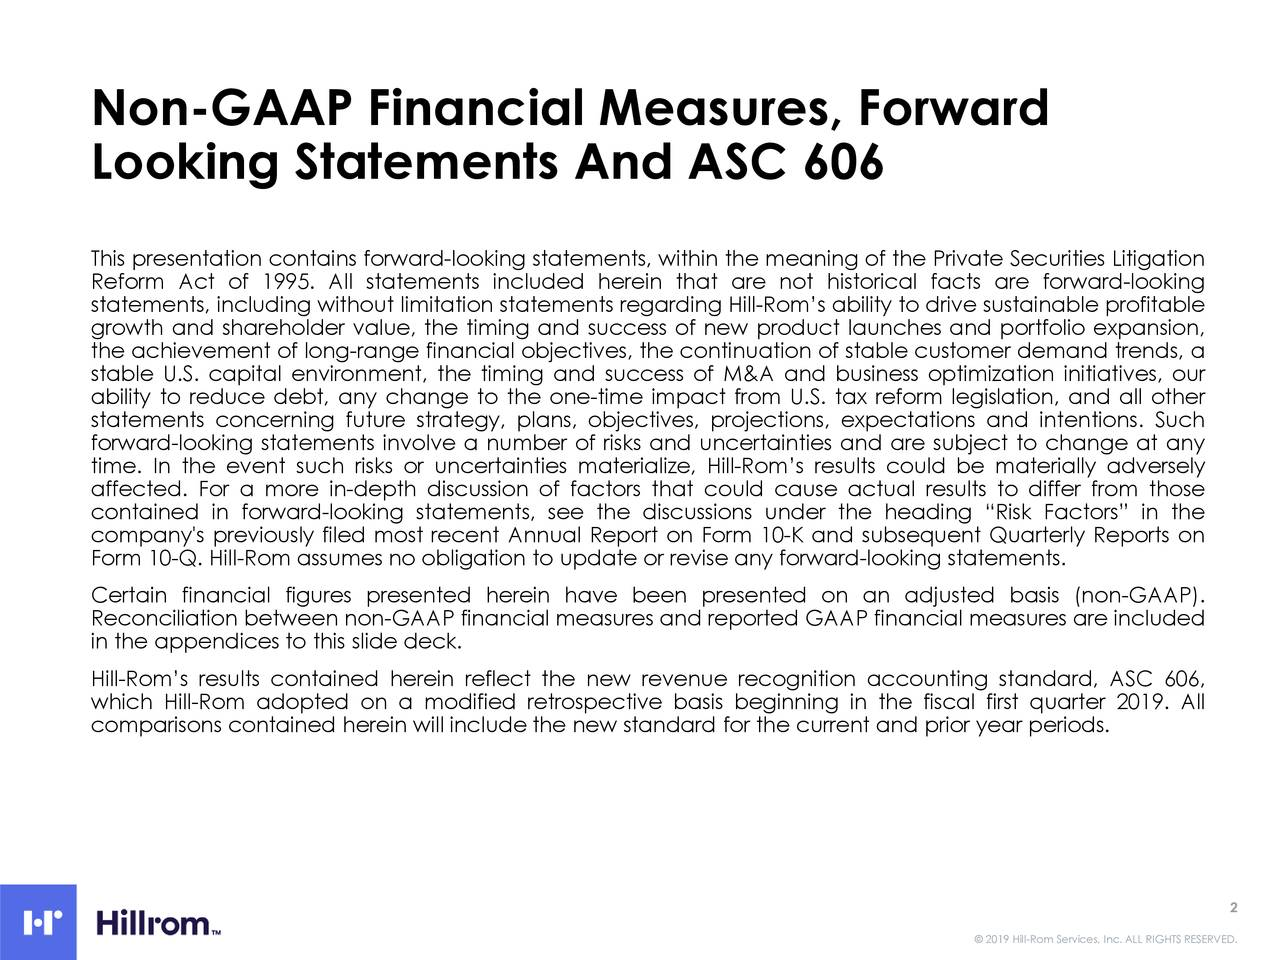 Non-GAAP Financial Measures, Forward